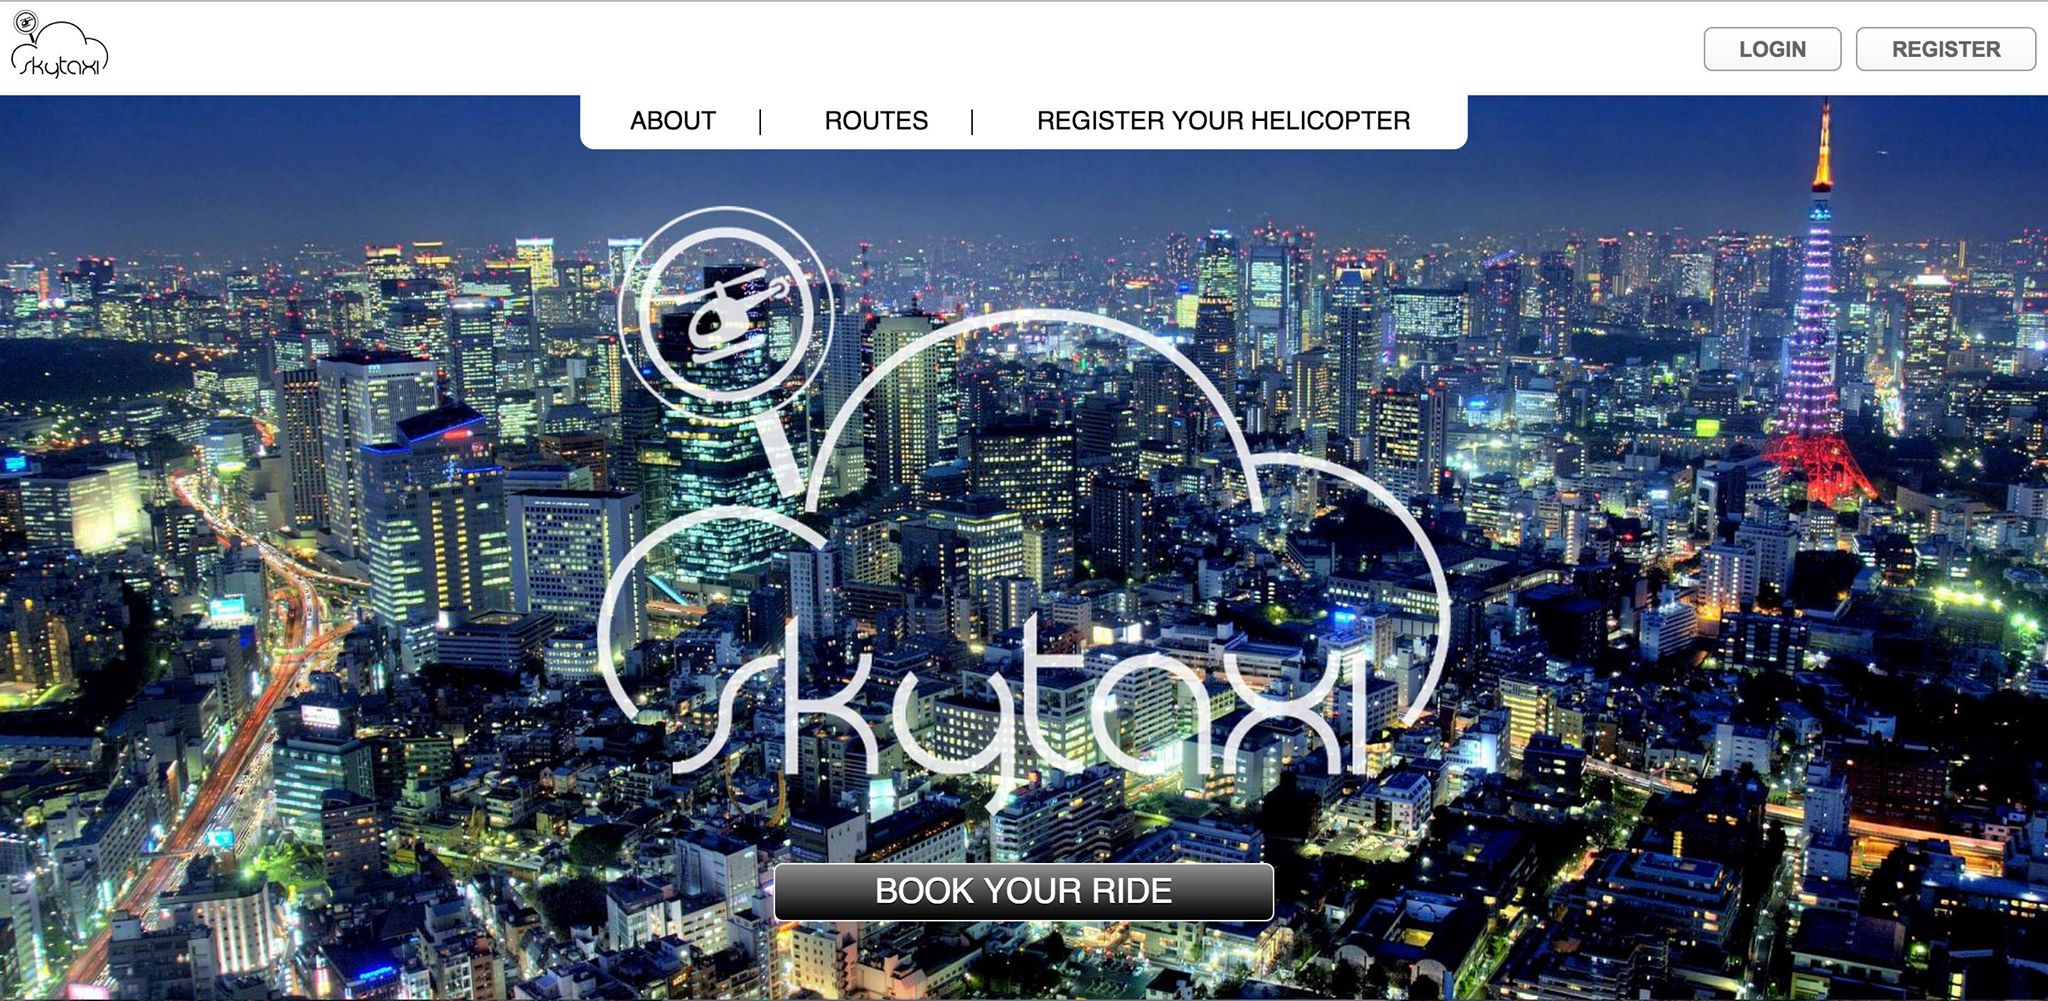 The landing page for skytaxi.com, which was conceived at Tokyo International Startup Weekend 2015 in cooperation with Brian Schwind.